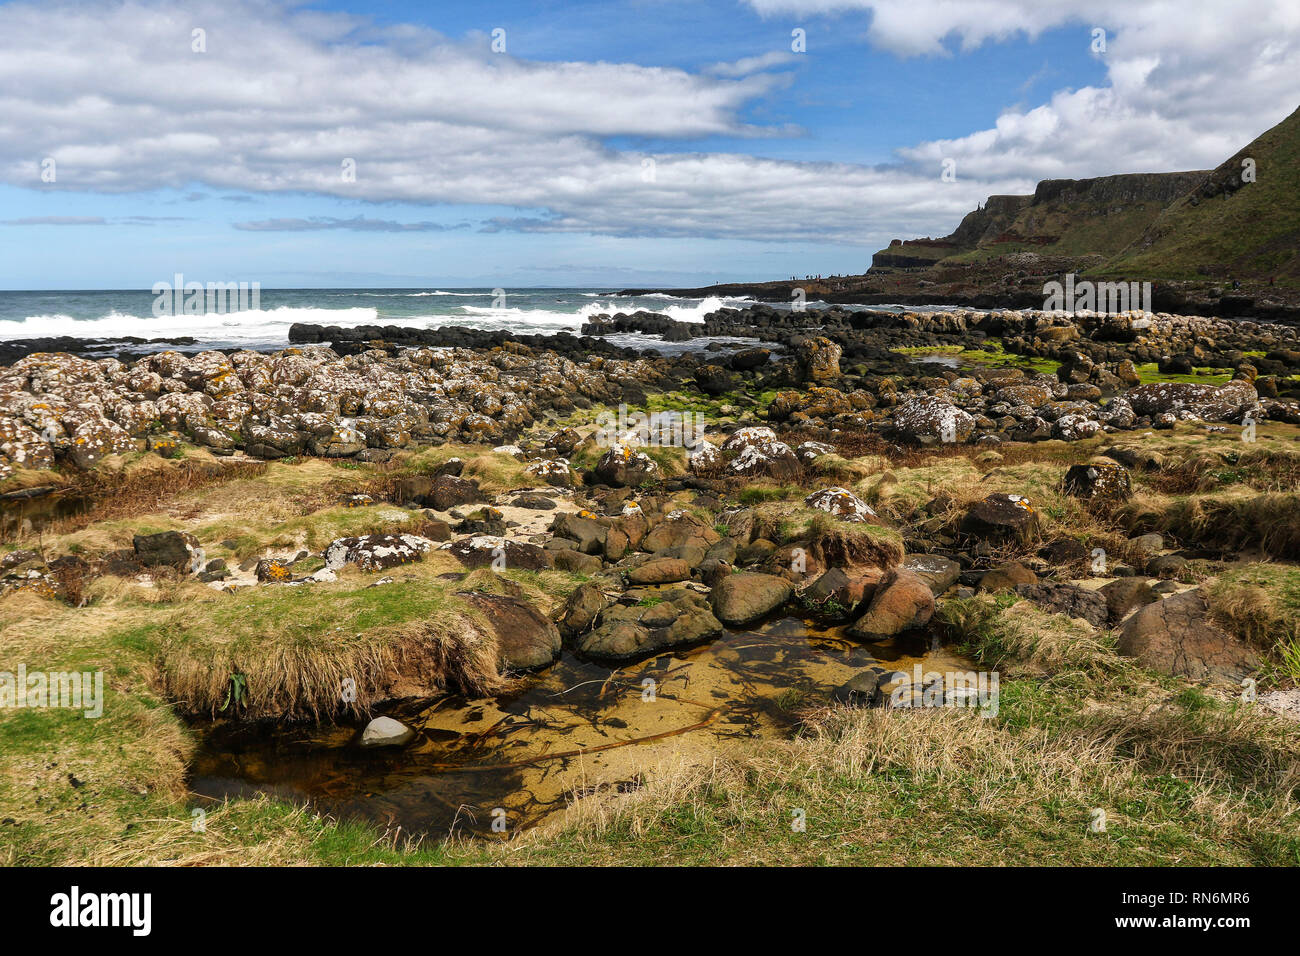 Landscapes in the Giants Causeway area of outstanding natural beauty, Antrim, Northern Ireland, Europe - Stock Image